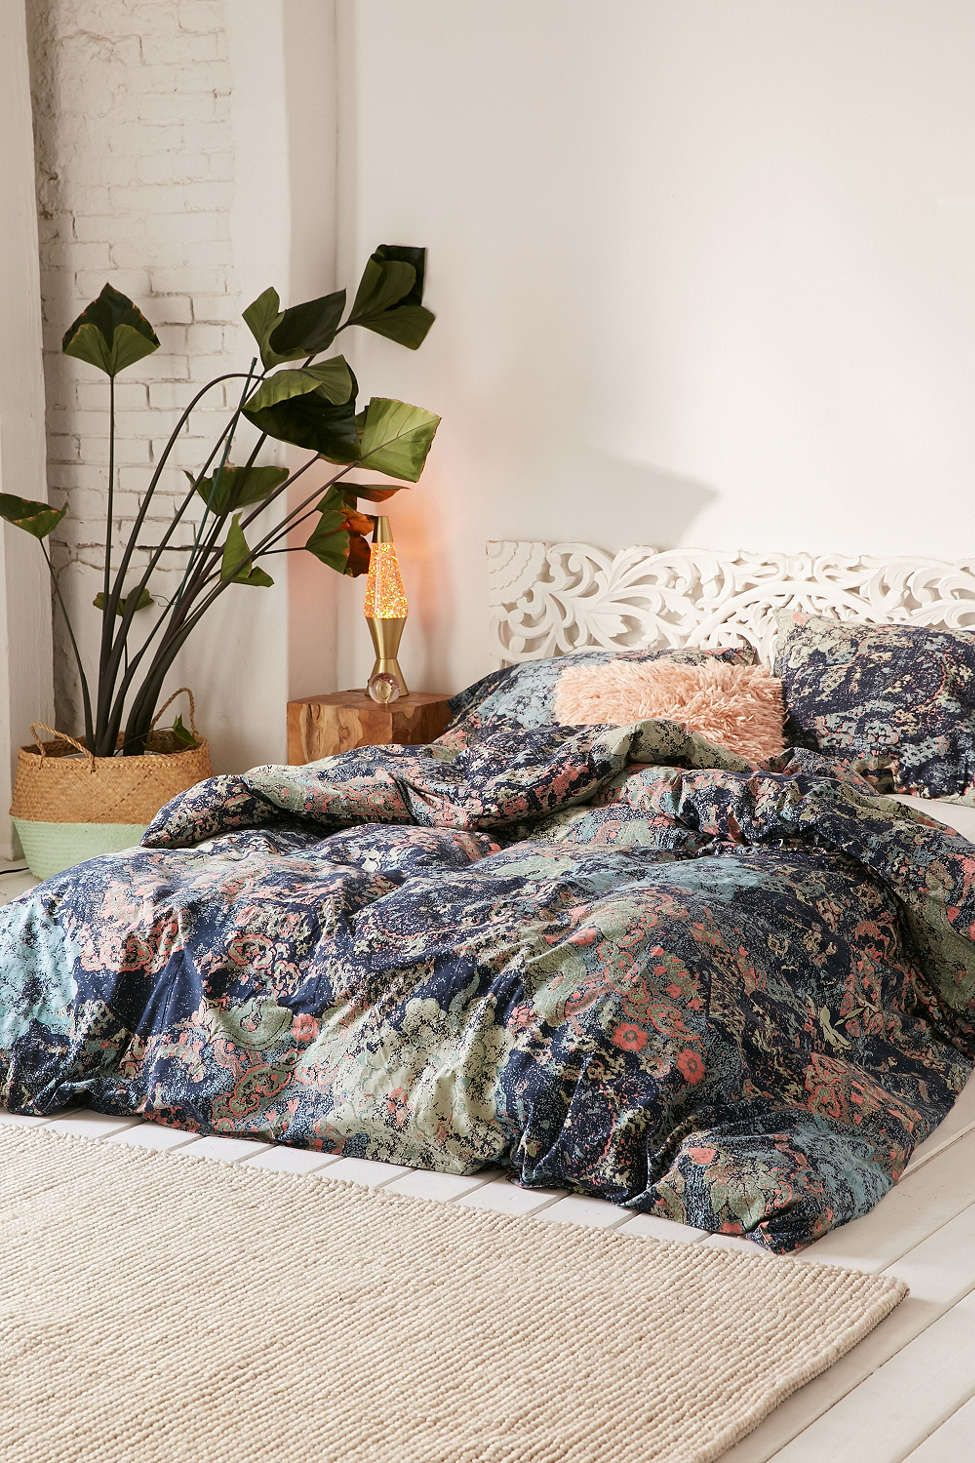 sato worn duvet cover home decor dormitorio hippie 15122 | 694f4b15122ff27fff73ccdcdb0a4429